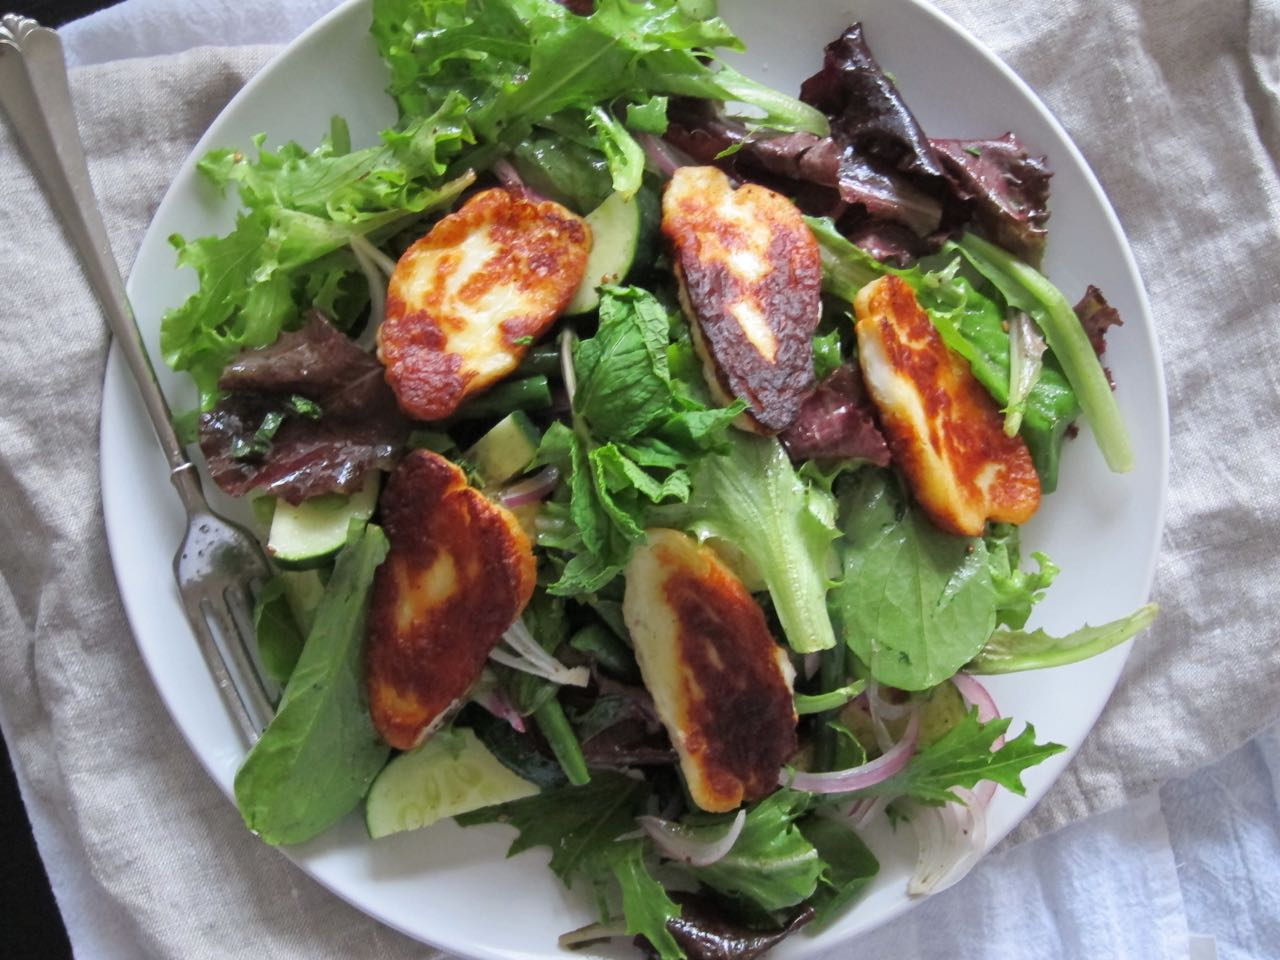 Salad with Fried Haloumi